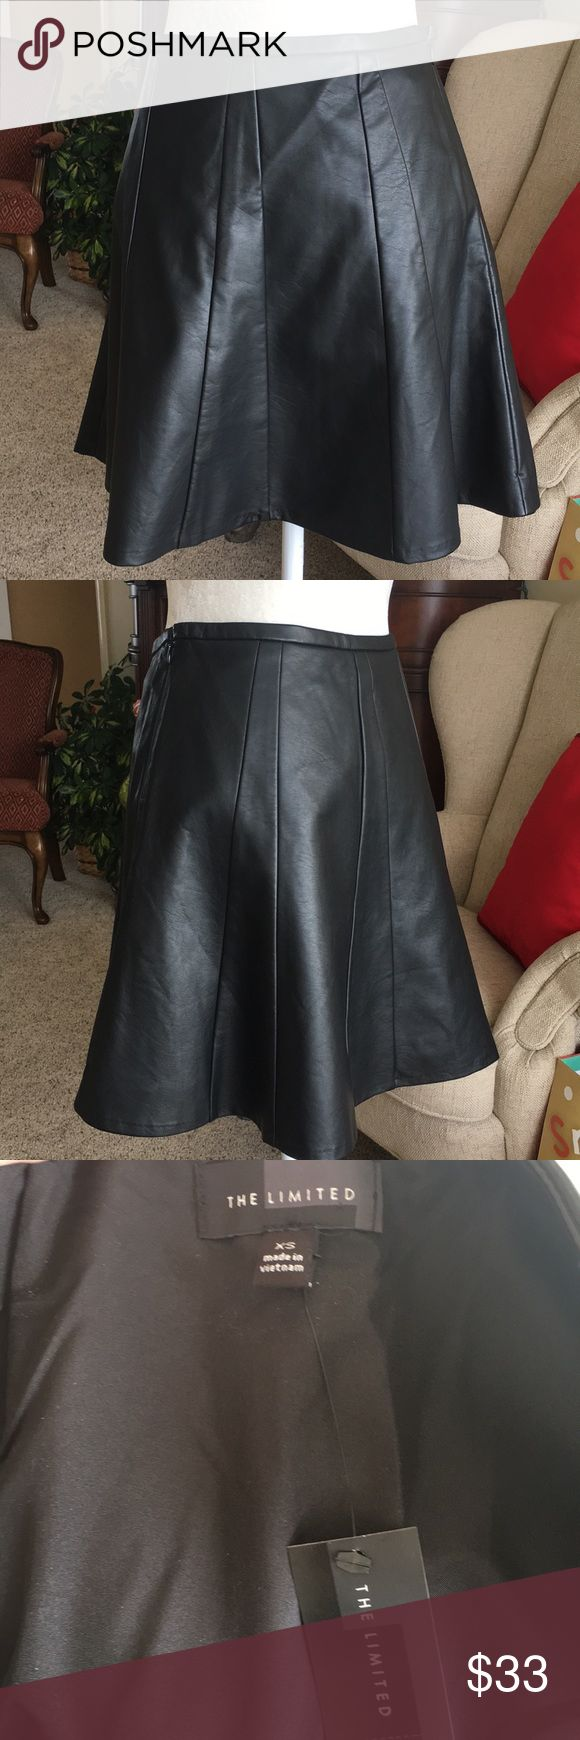 """NWT The Limited leather skater skirt Black 100% leather skater skirt from The Limited. Waist laying flat 14"""" length 17 1/2"""" The Limited Skirts Circle & Skater"""